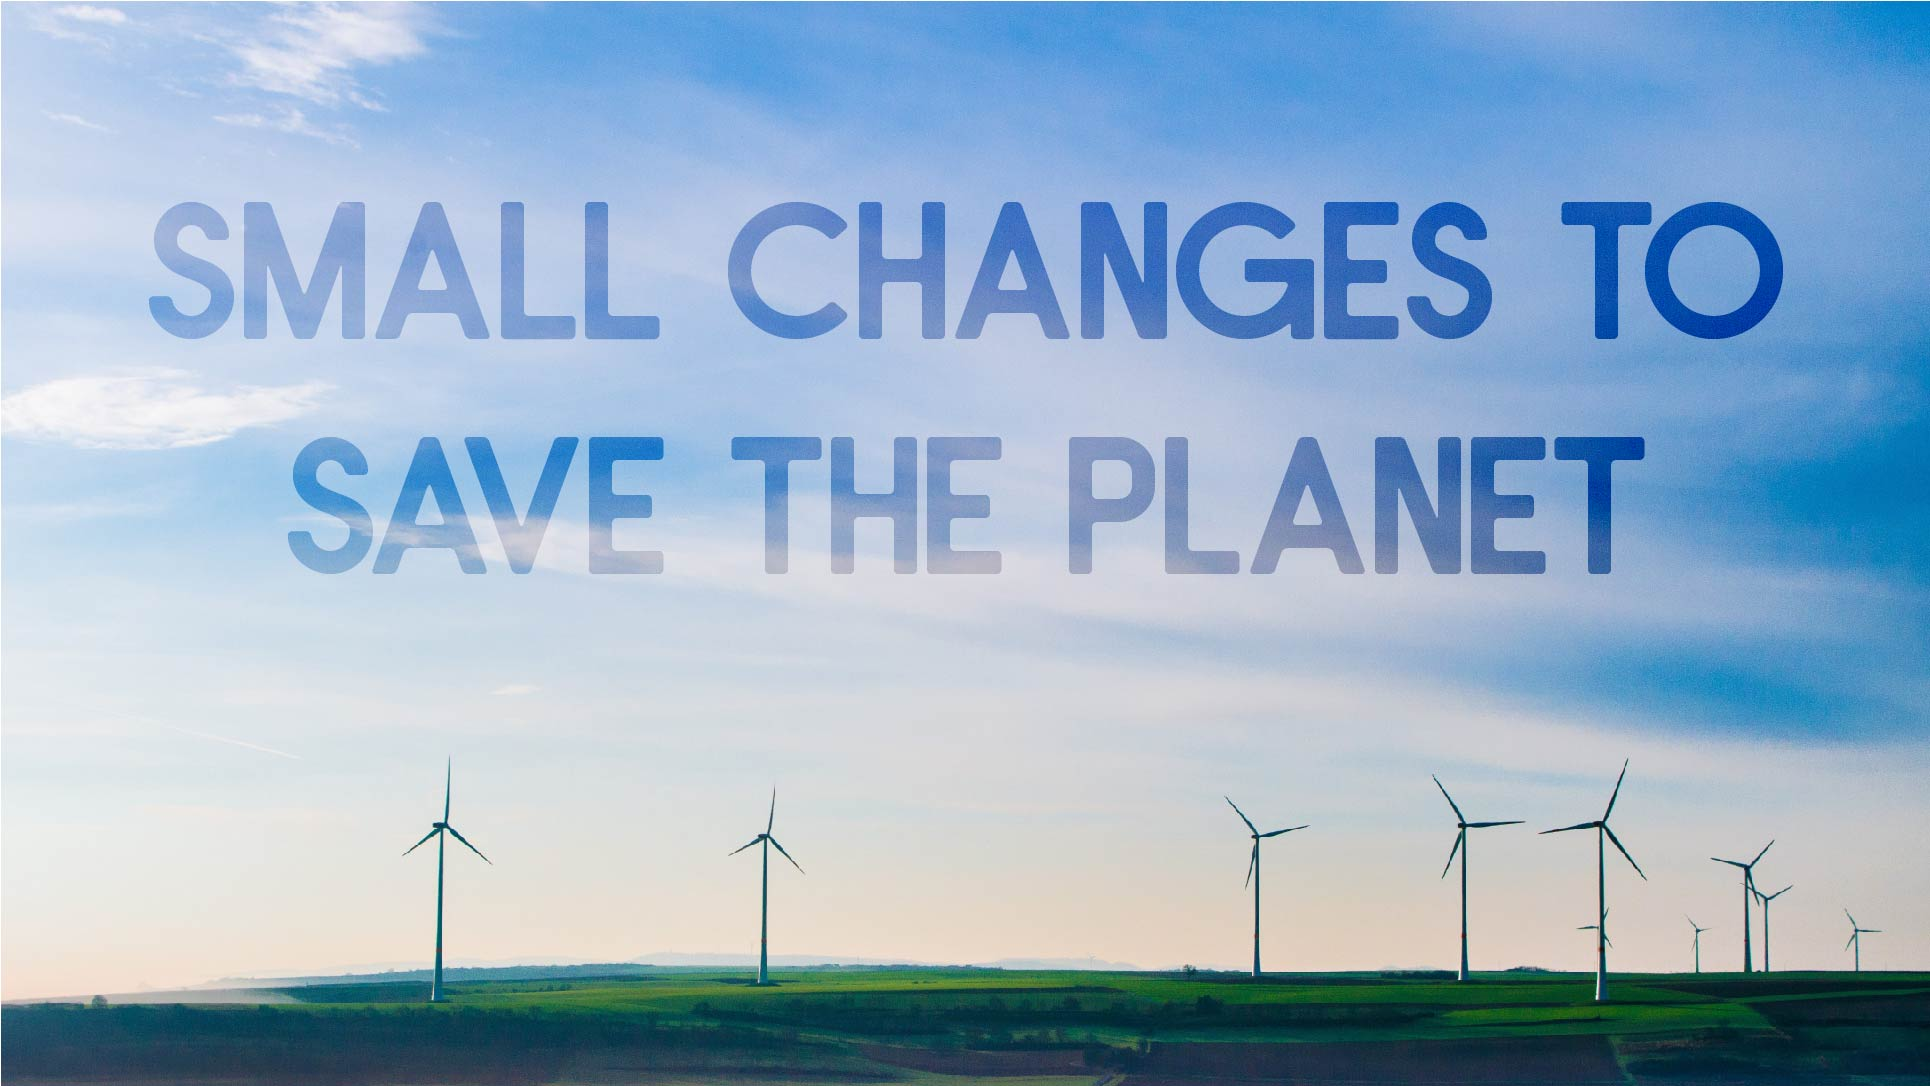 Small changes to save the planet blog cover